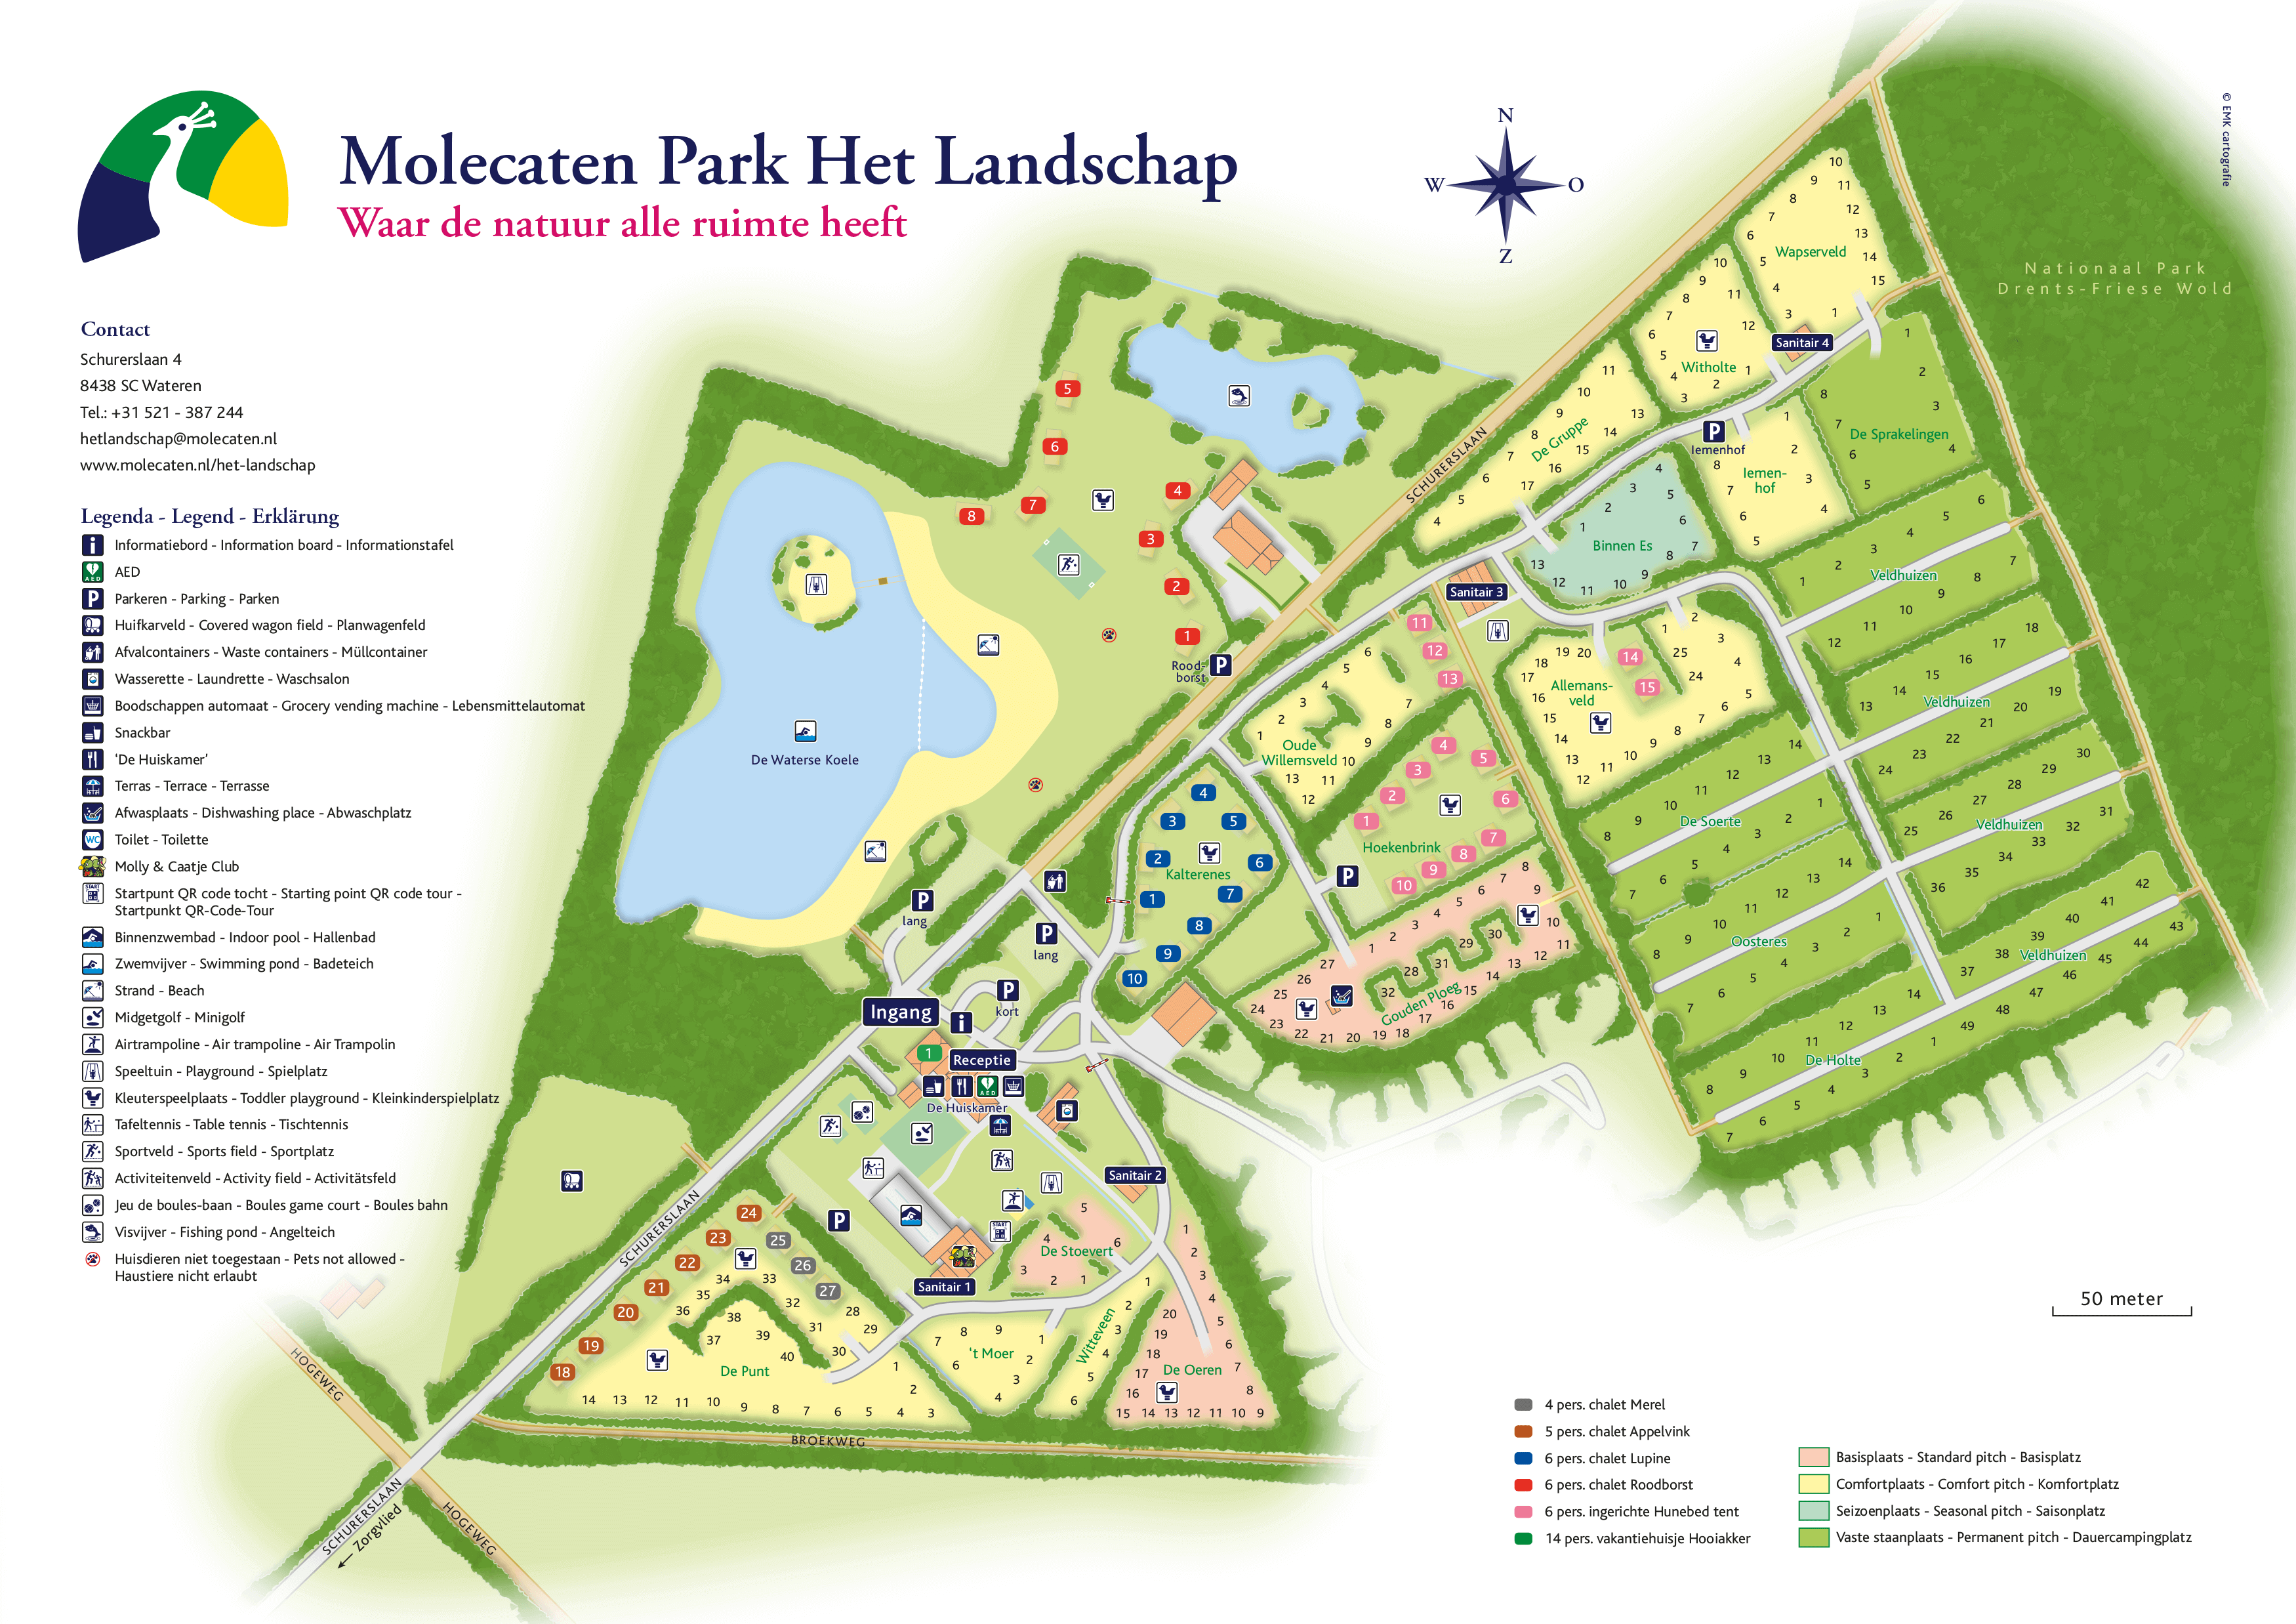 Molecaten Park Het Landschap accommodation.parkmap.alttext